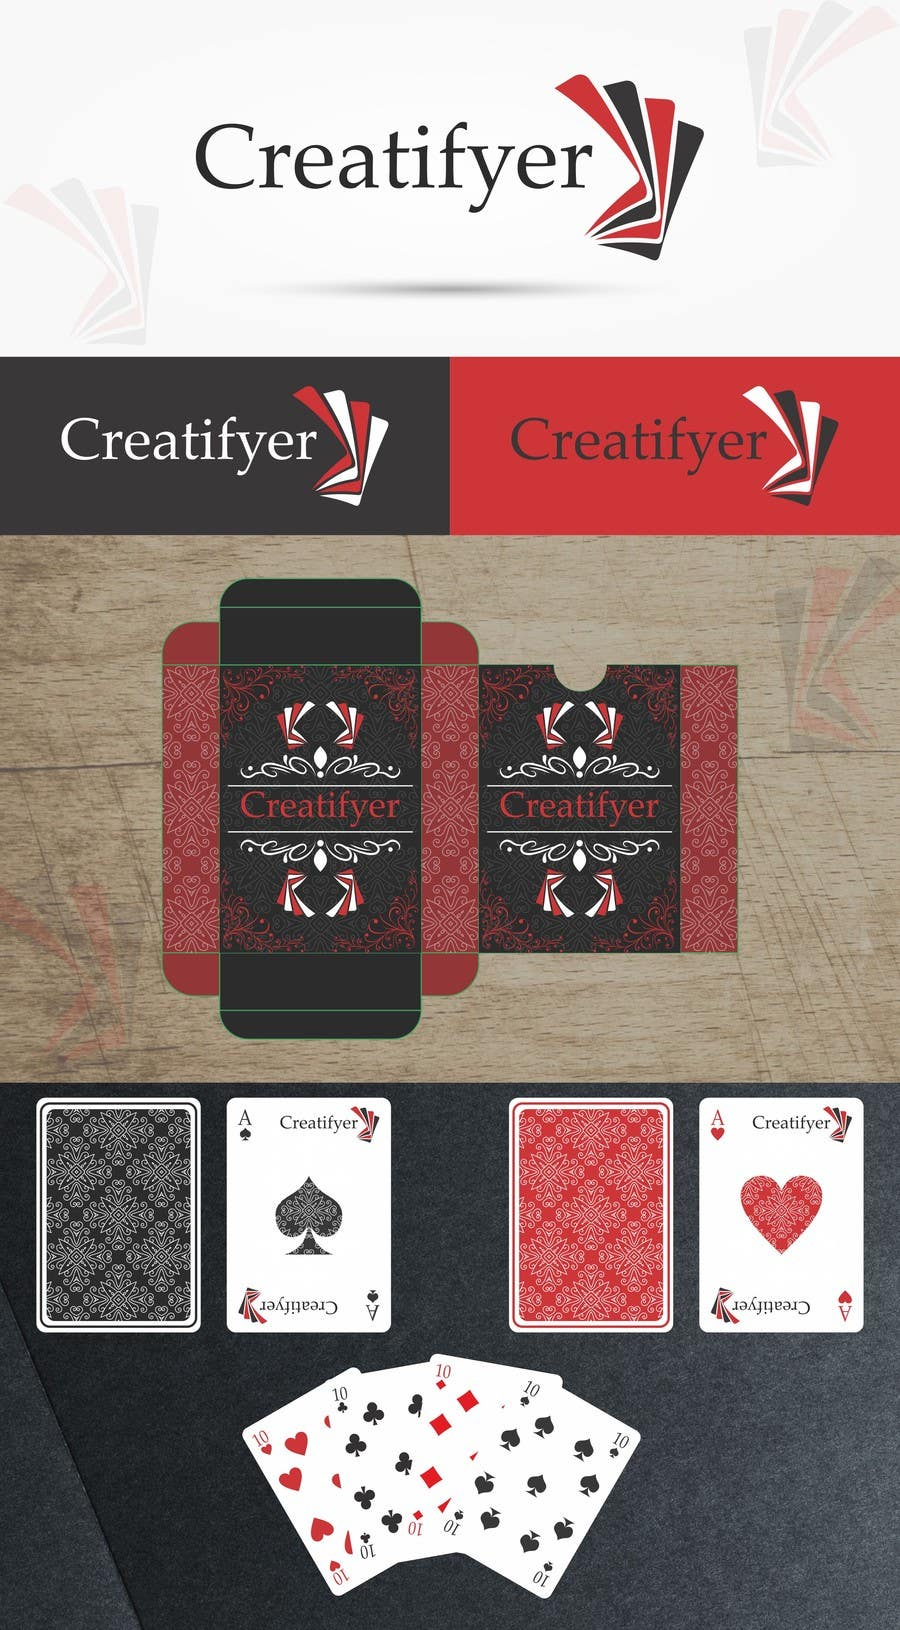 #94 for Design logo, box and play cards by doallmybest